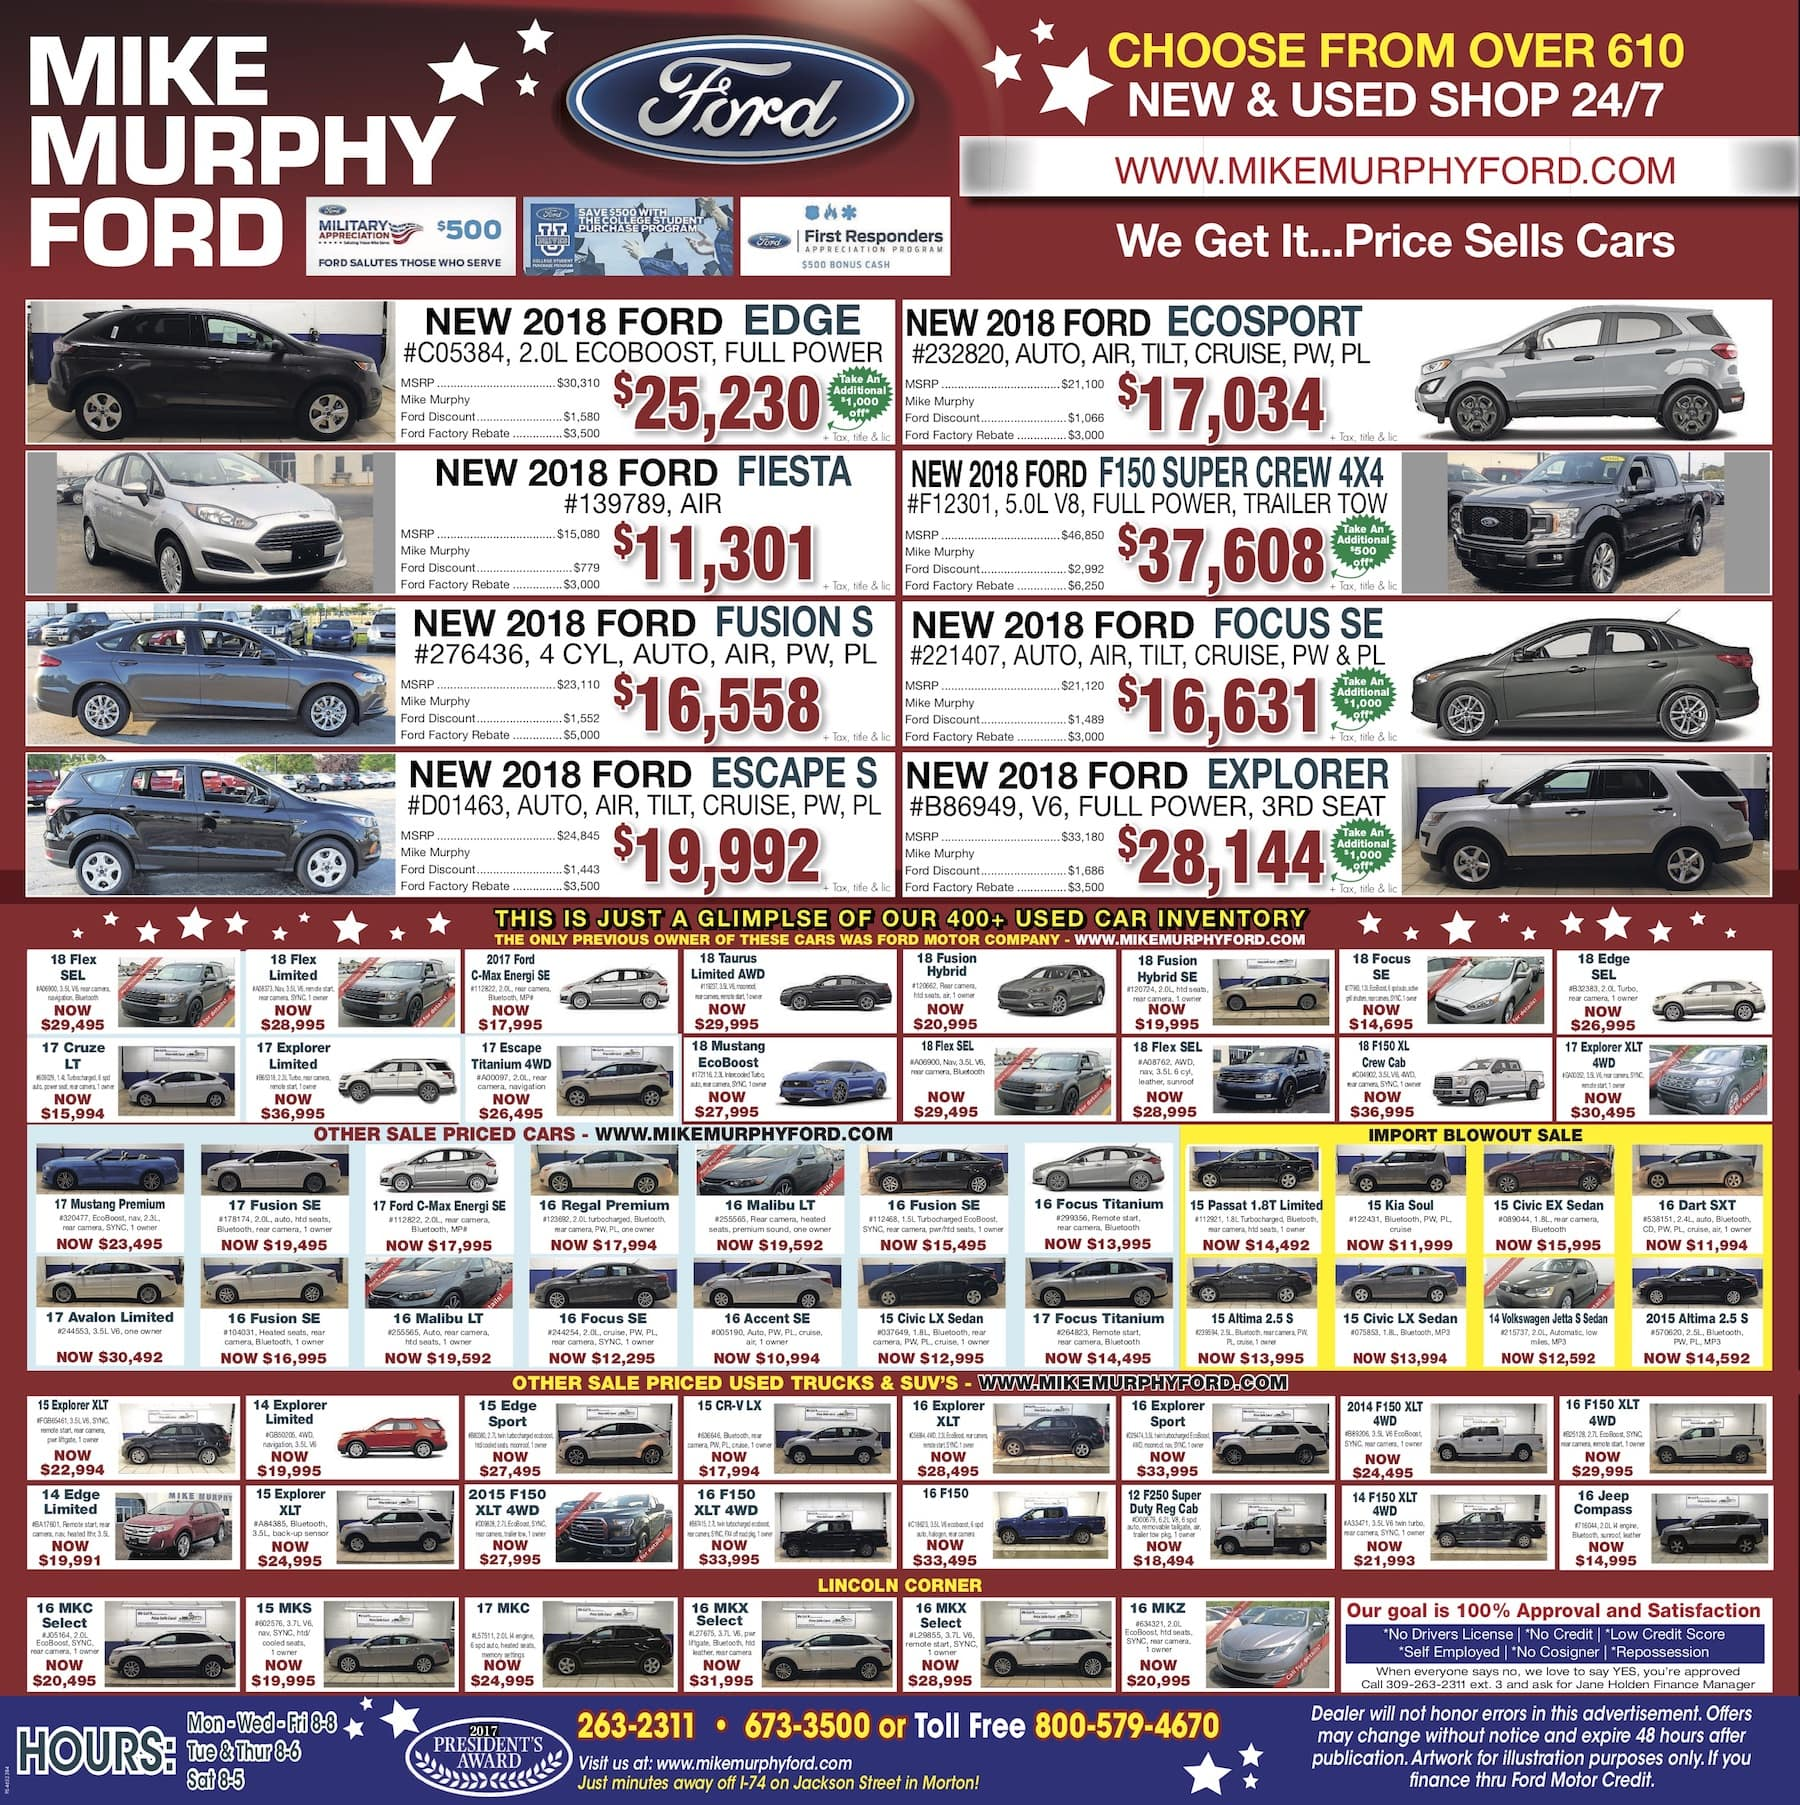 Mike-Murphy-Ford-october-nineteenth